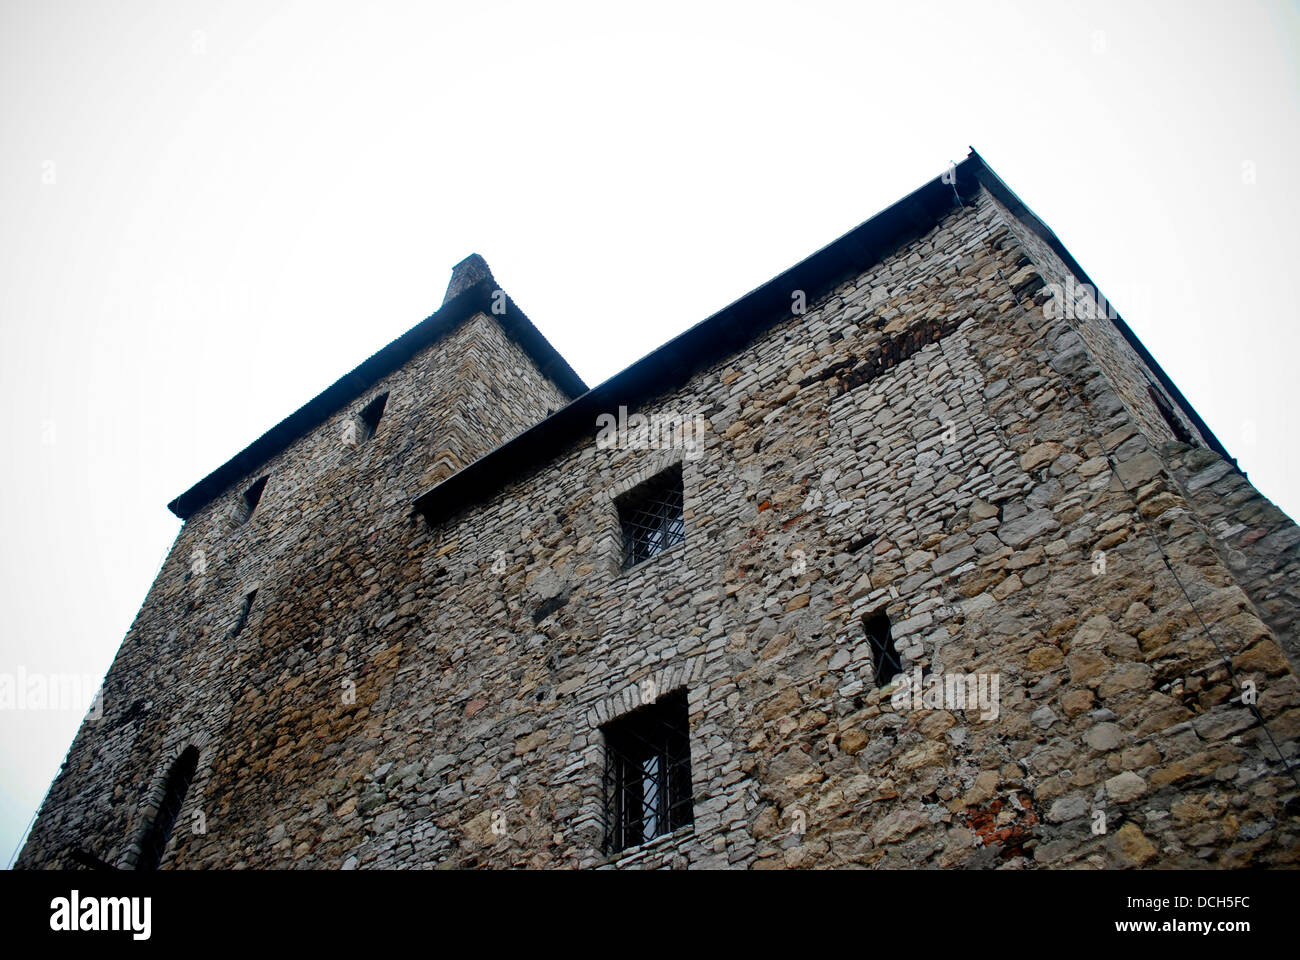 Old, historical, medieval castle in Bedzin, Poland. Stock Photo